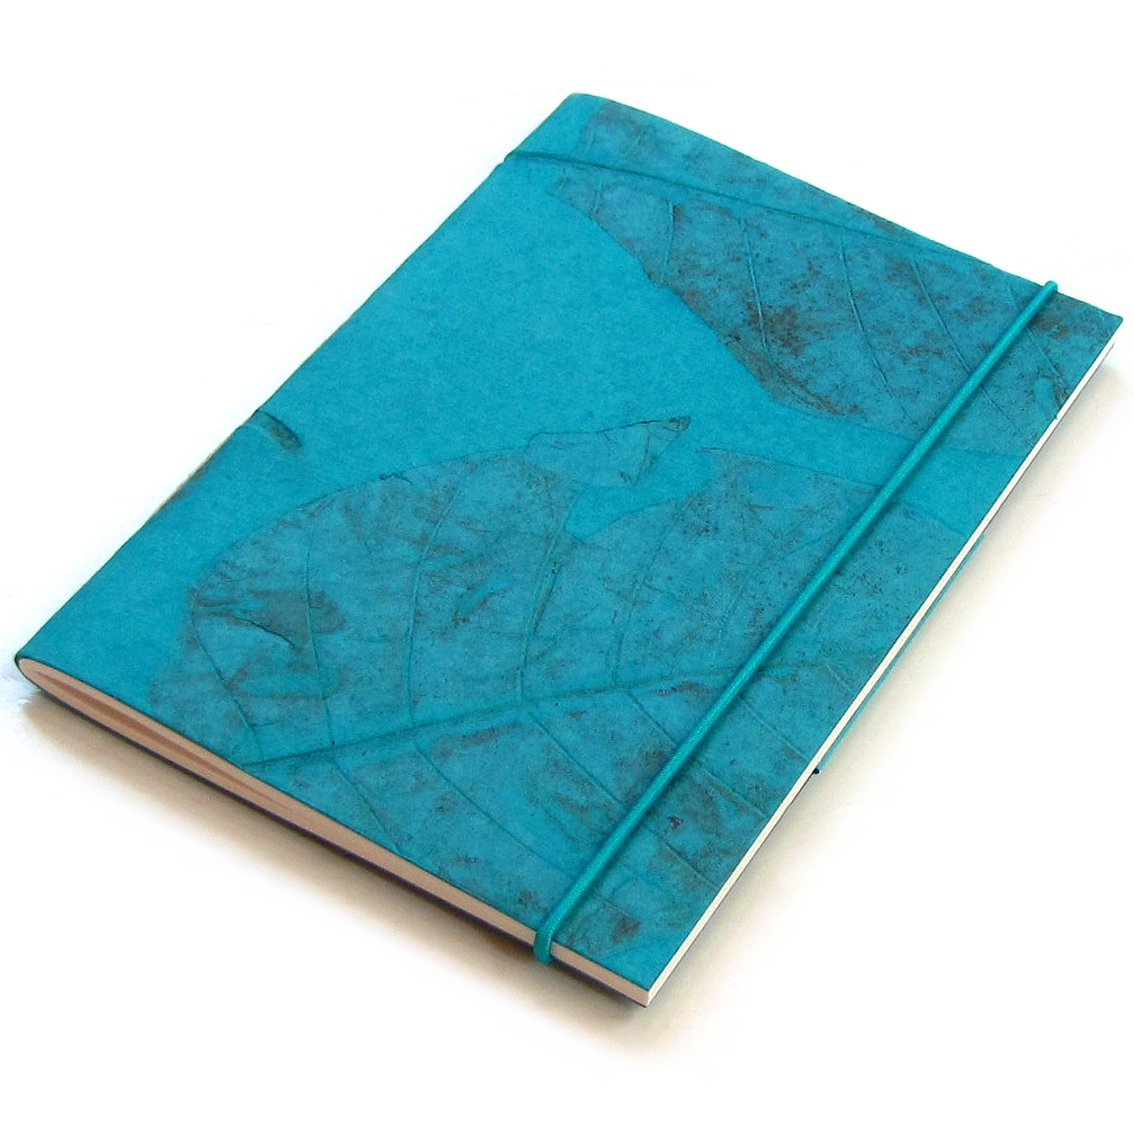 Sketching diary notebook recipes journal handmade teal large natural leaf 5x7 40pp hand sewn binding